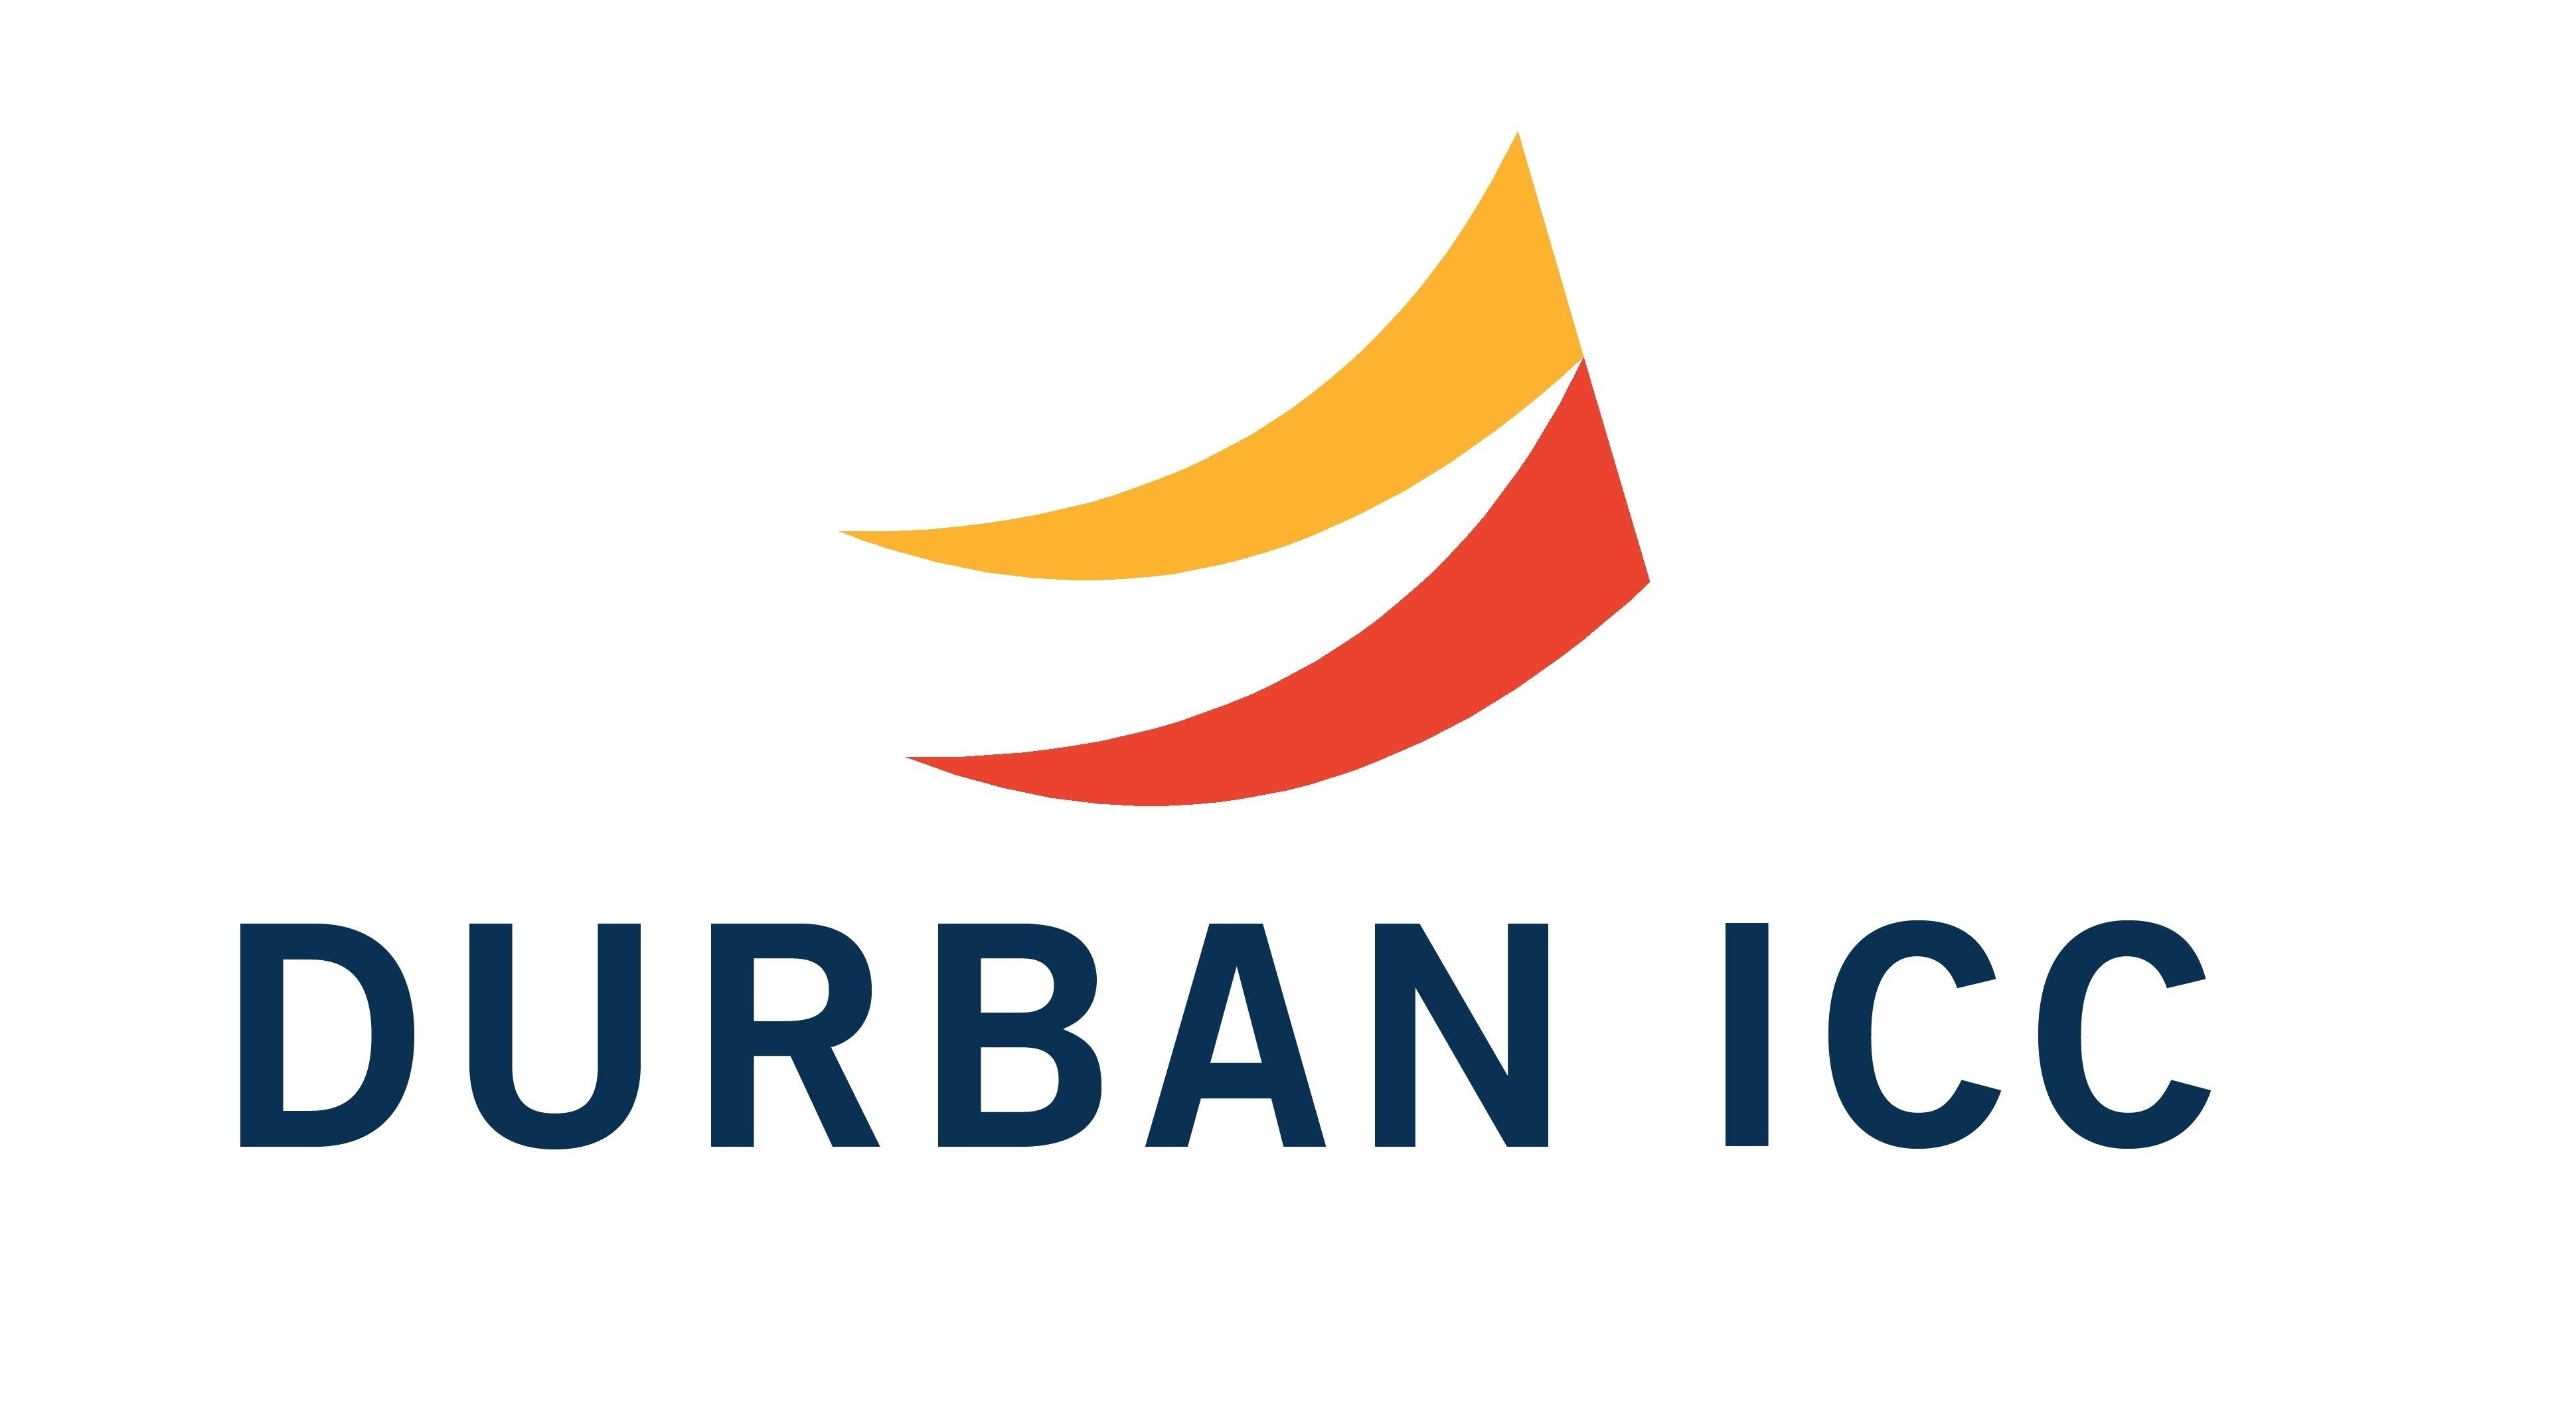 durban icc brand mark and word mark landscape